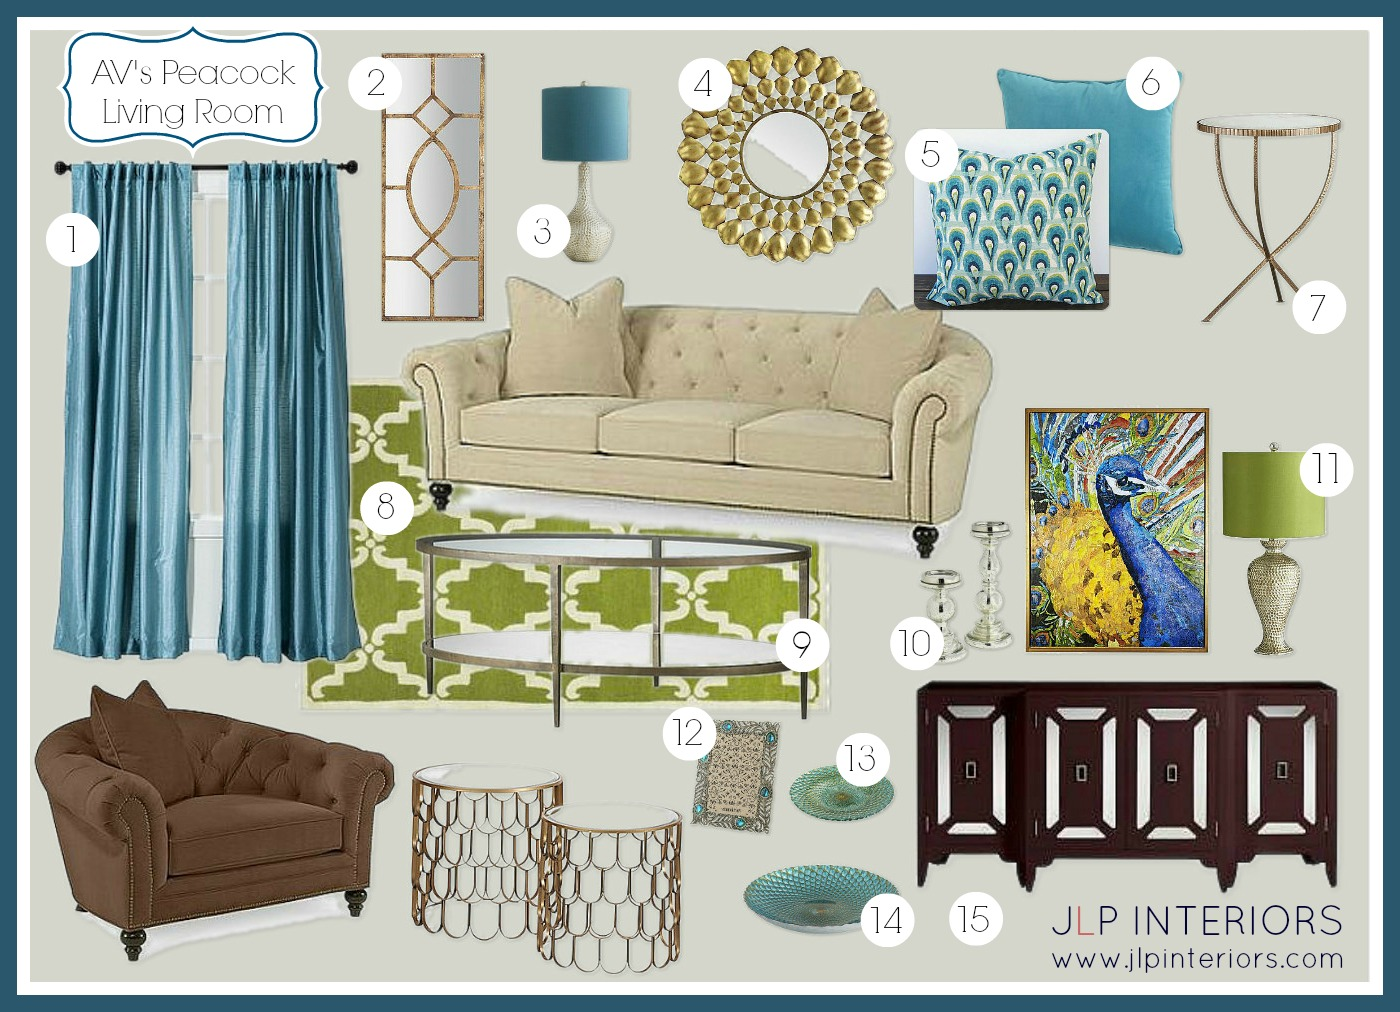 AV Had Selected The Tufted Sofa And Arm Chair, The Peacock Canvas, The  Console Table, And The Nesting Tables And I Selected Some Pieces That I  Thought Would ...